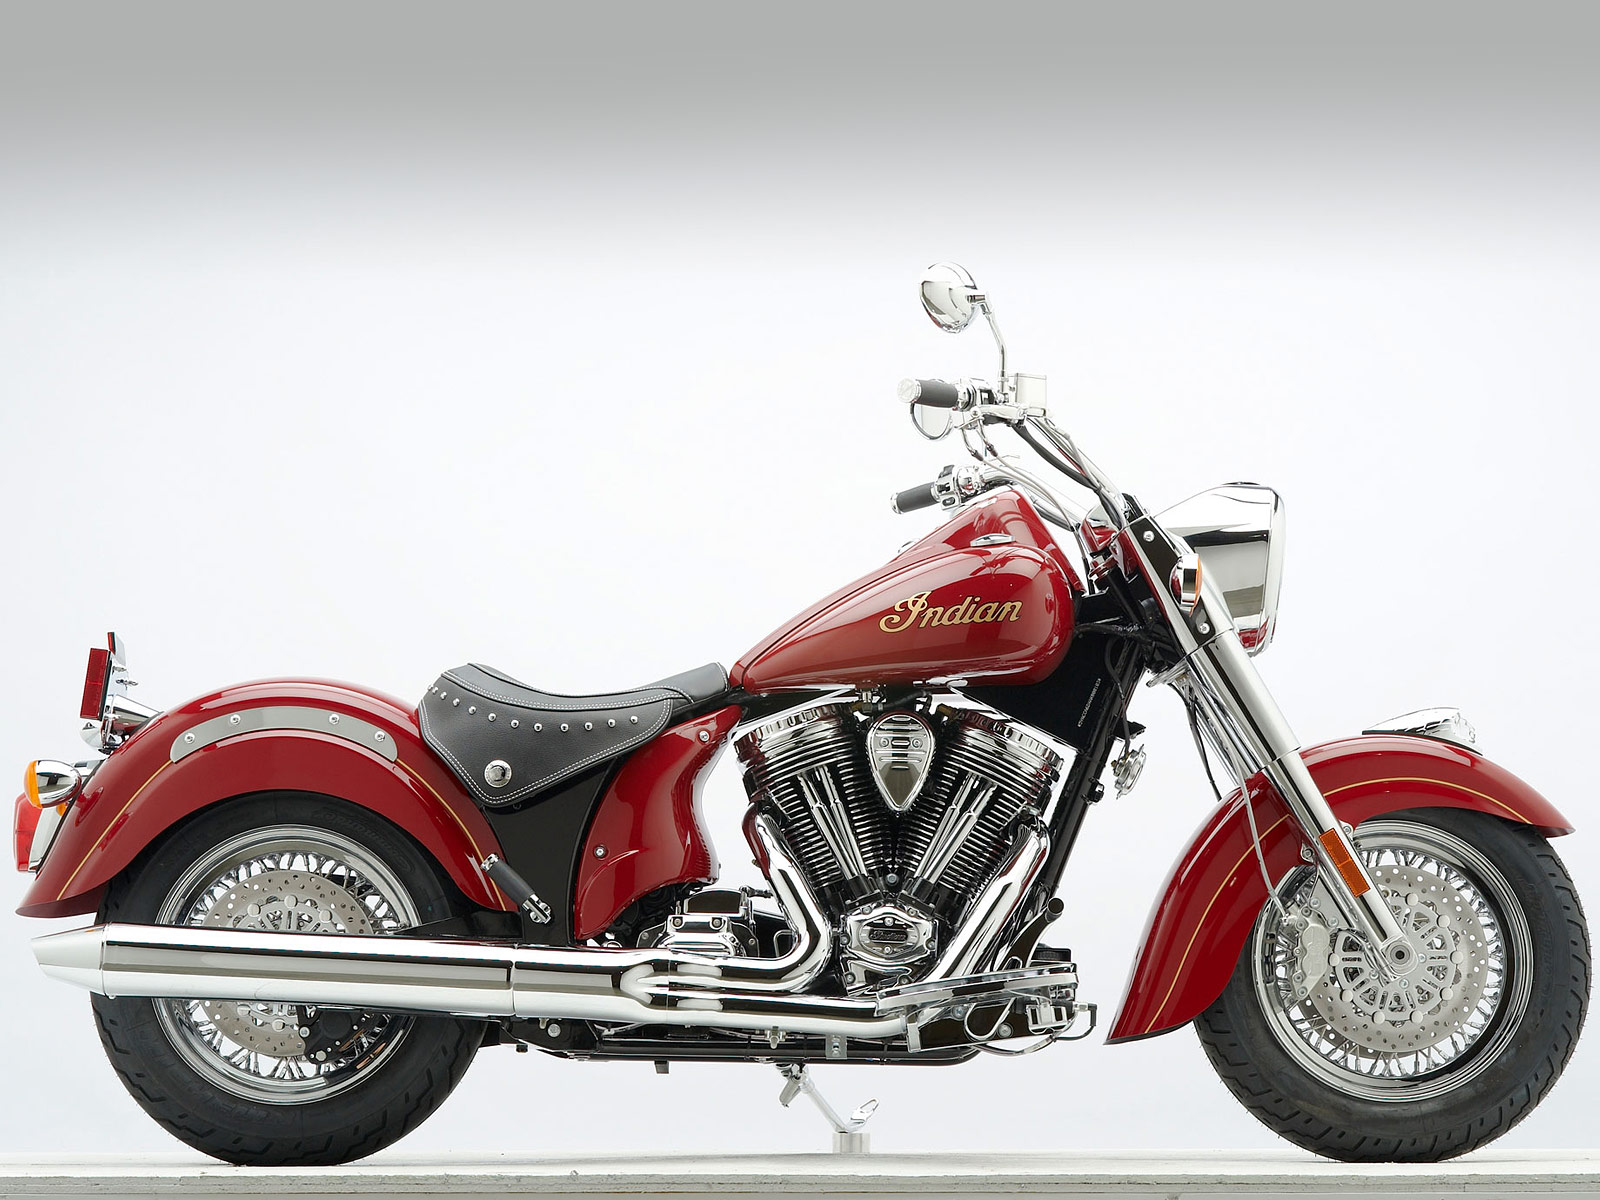 2012 Indian ChiefClassic motorcycle desktop wallpaper 2jpg 1600x1200